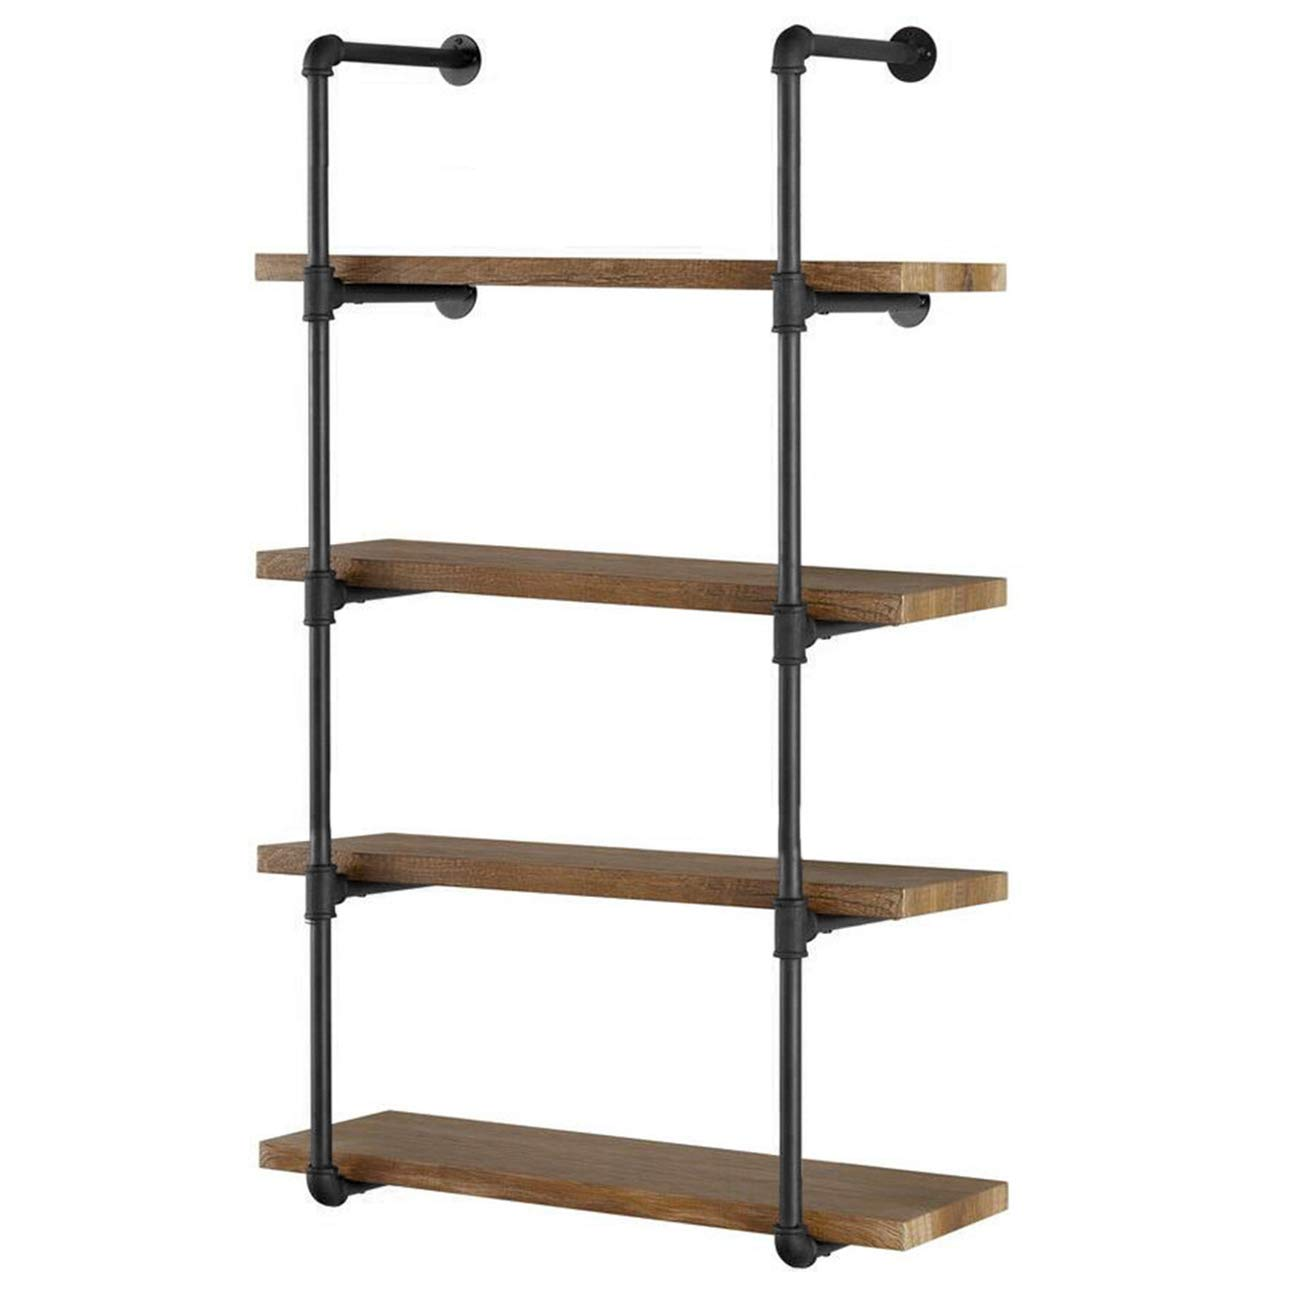 Yuanshikj 2Pc (56'' Tall) (12''deep) Industrial Wall Mount Iron Pipe Shelf Shelves Shelving Bracket Vintage Retro Black DIY Open Bookshelf DIY Storage Office Room Kitchen (2 Pcs 5Tier Hardware Only)